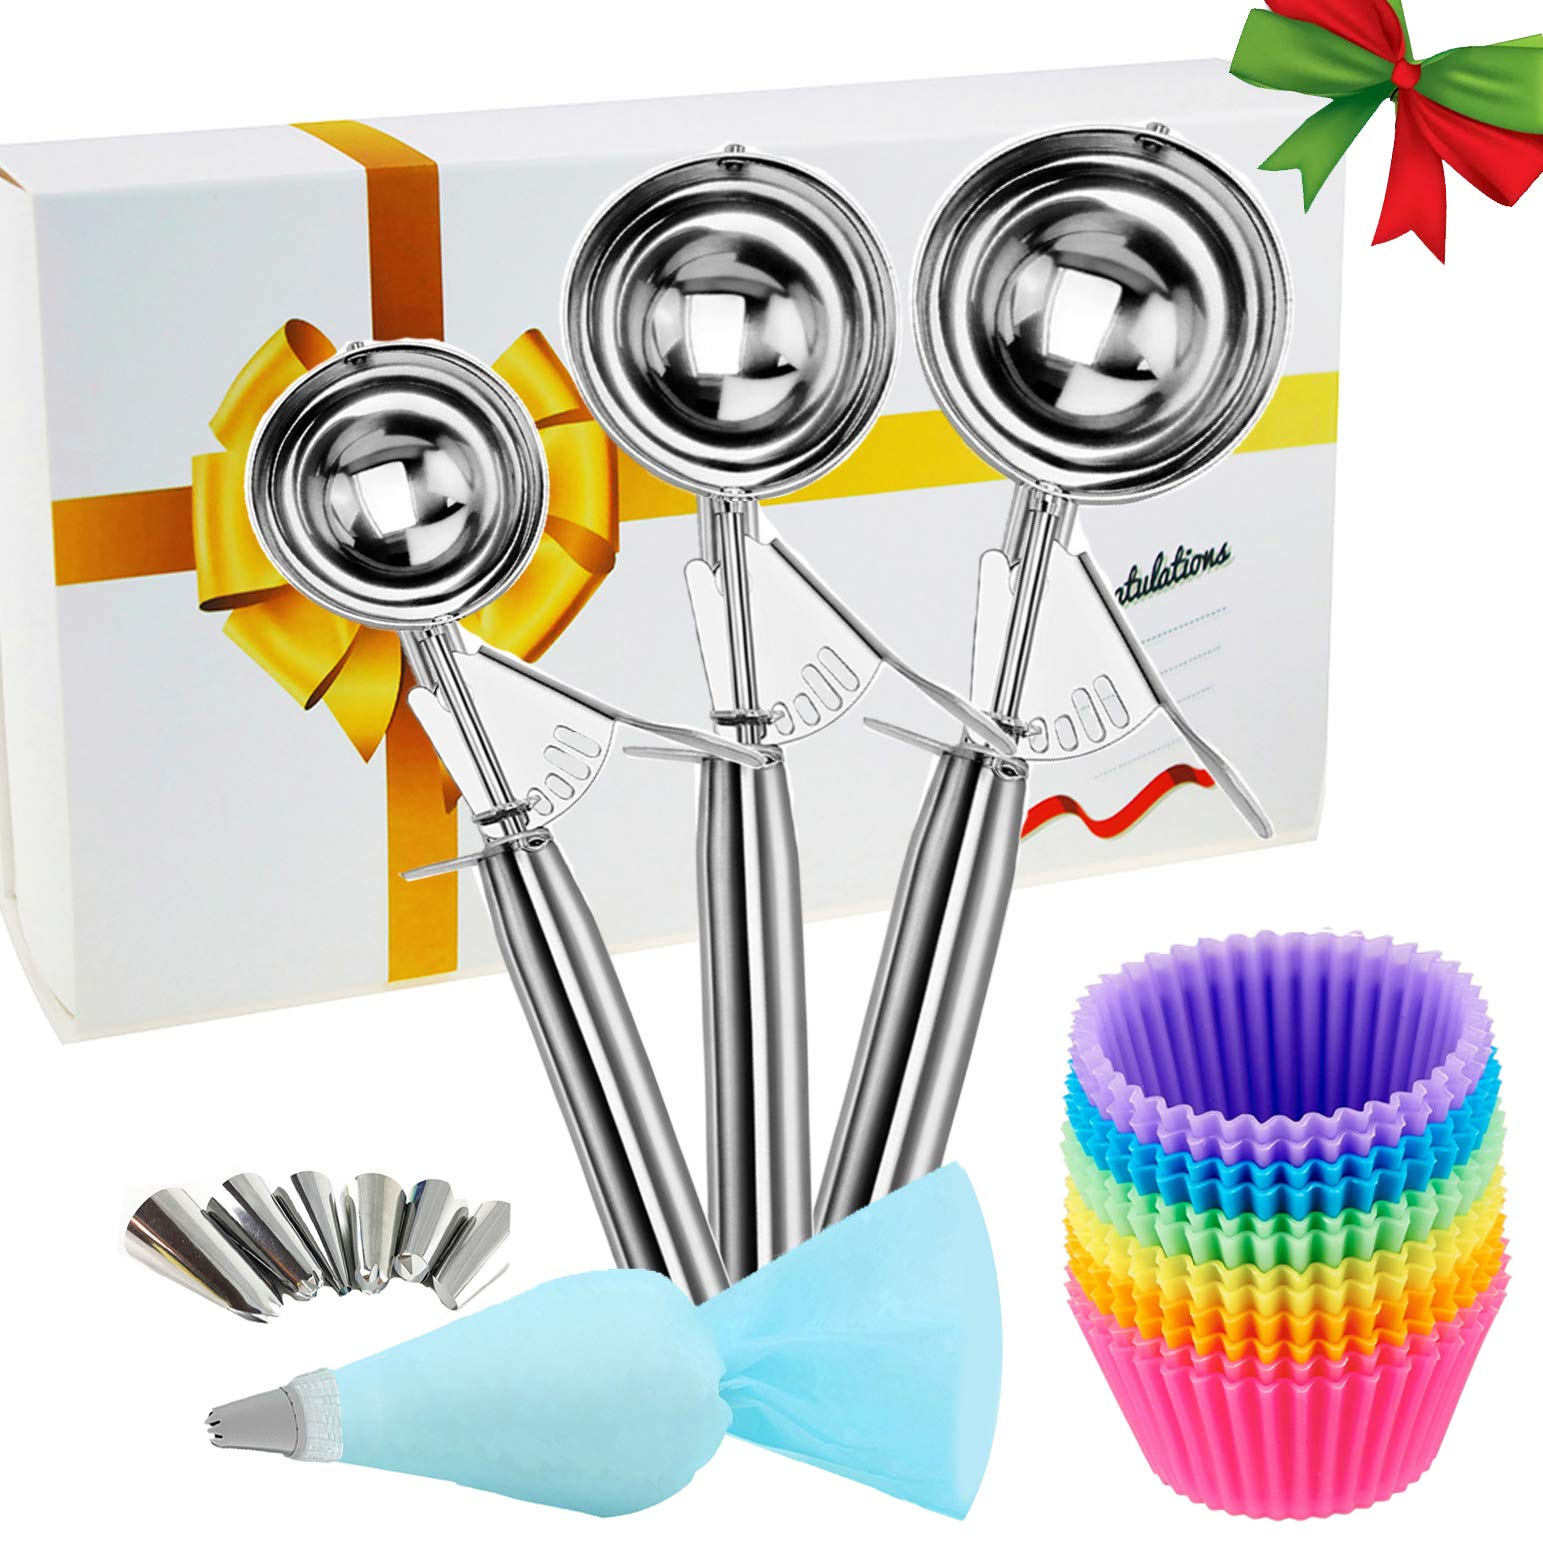 MAGICYOYO Ice Cream Scoops 3 Pcs, 18/8 Stainless Steel Large-Medium-Small Premium Cookie Scoops Heavy Duty Cupcake Melon Baller+ 12 Reusable Muffin Cups+ 6 Piping Tips + 1 Pastry Bag